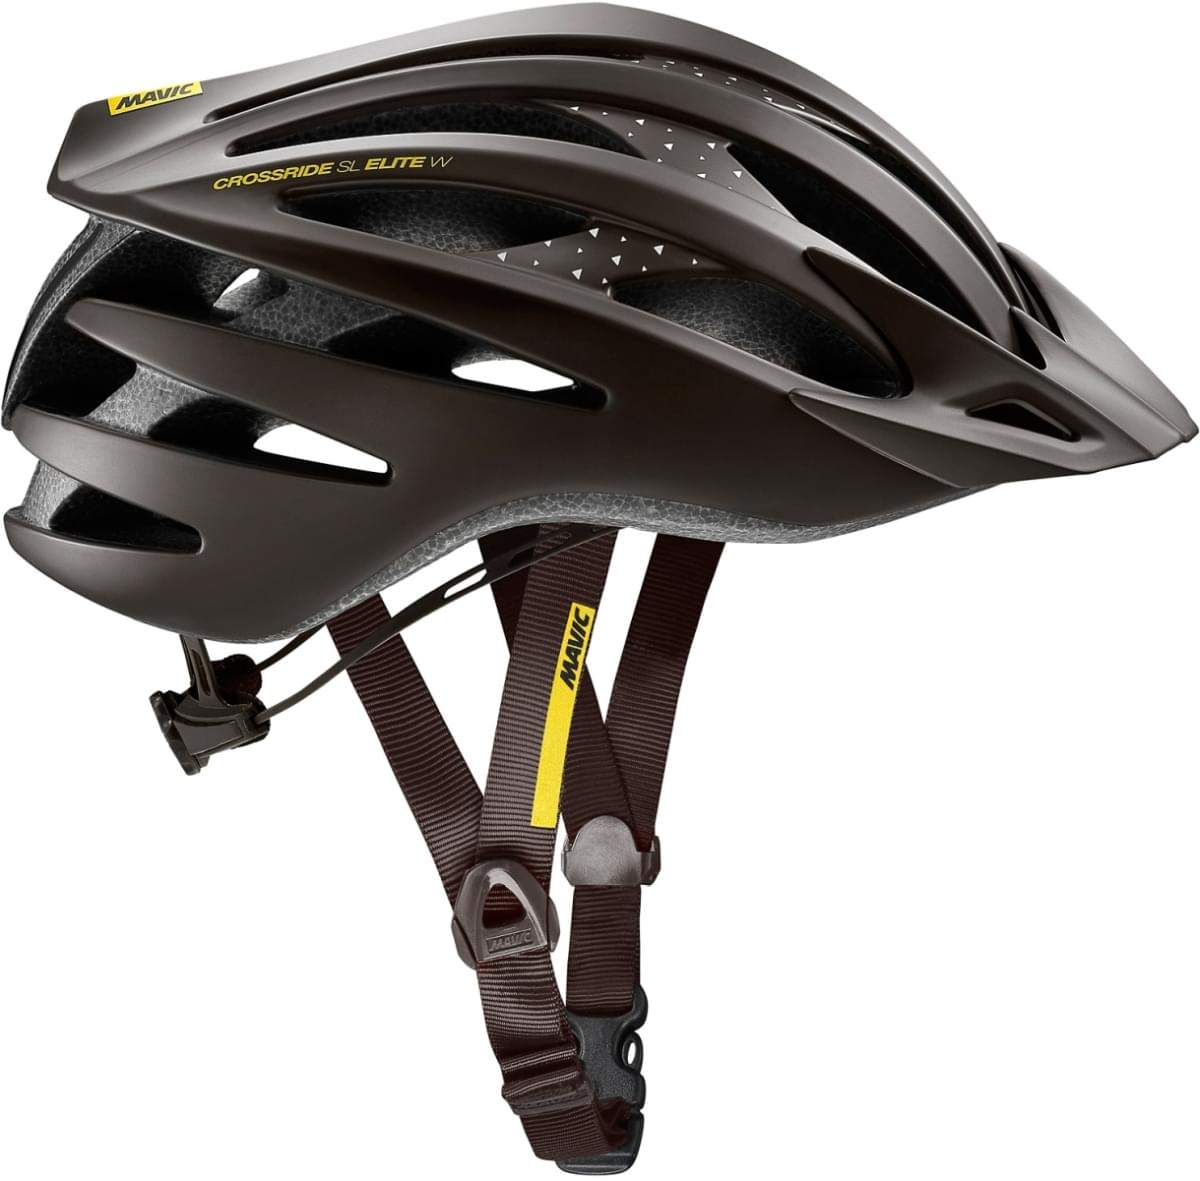 Mavic Crossride Sl Elite Helmet W - after dark/yellow M